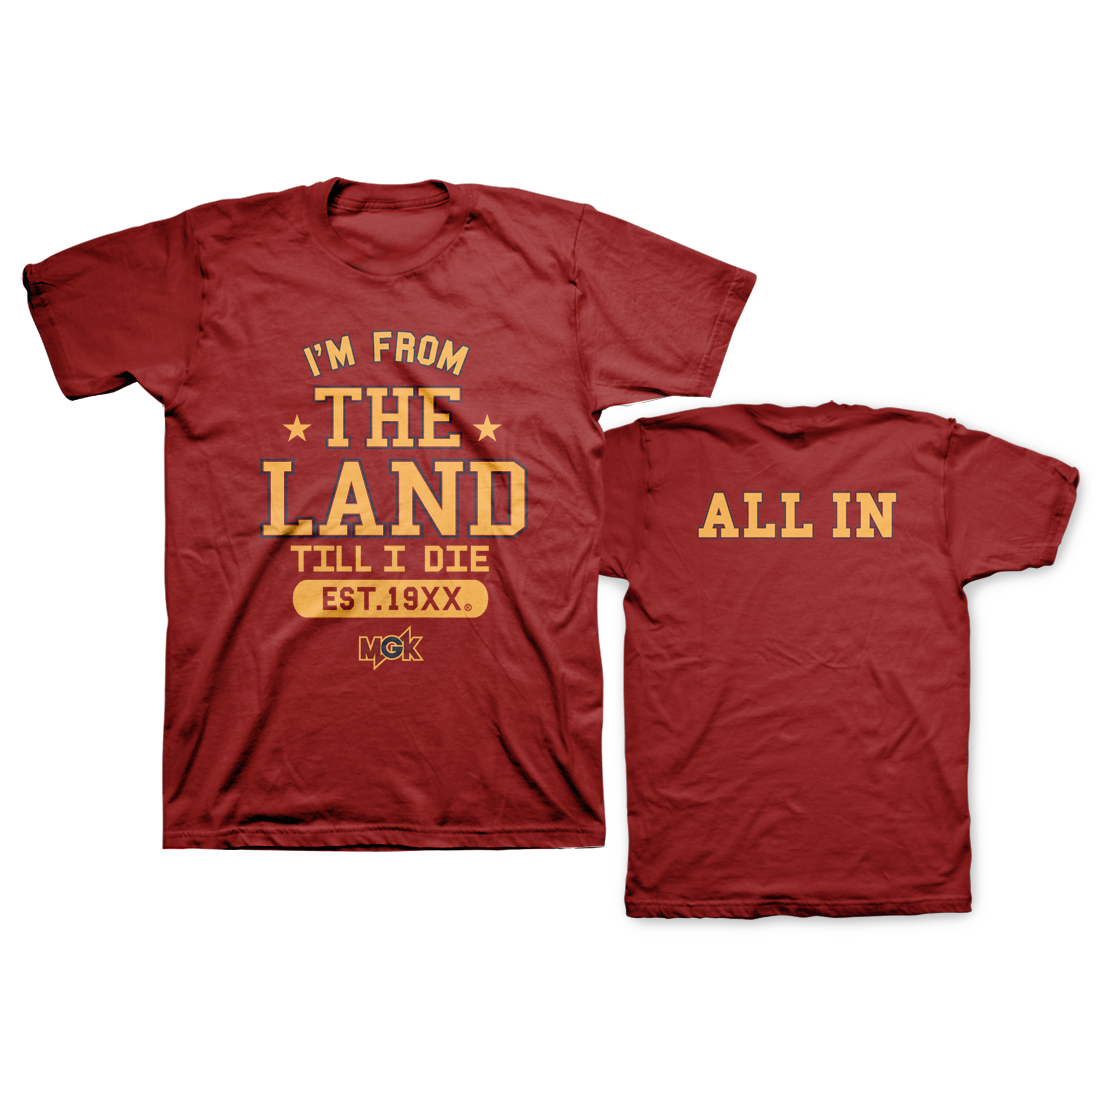 The Land All In T-Shirt – Machine Gun Kelly Shop | Shop MGK ...